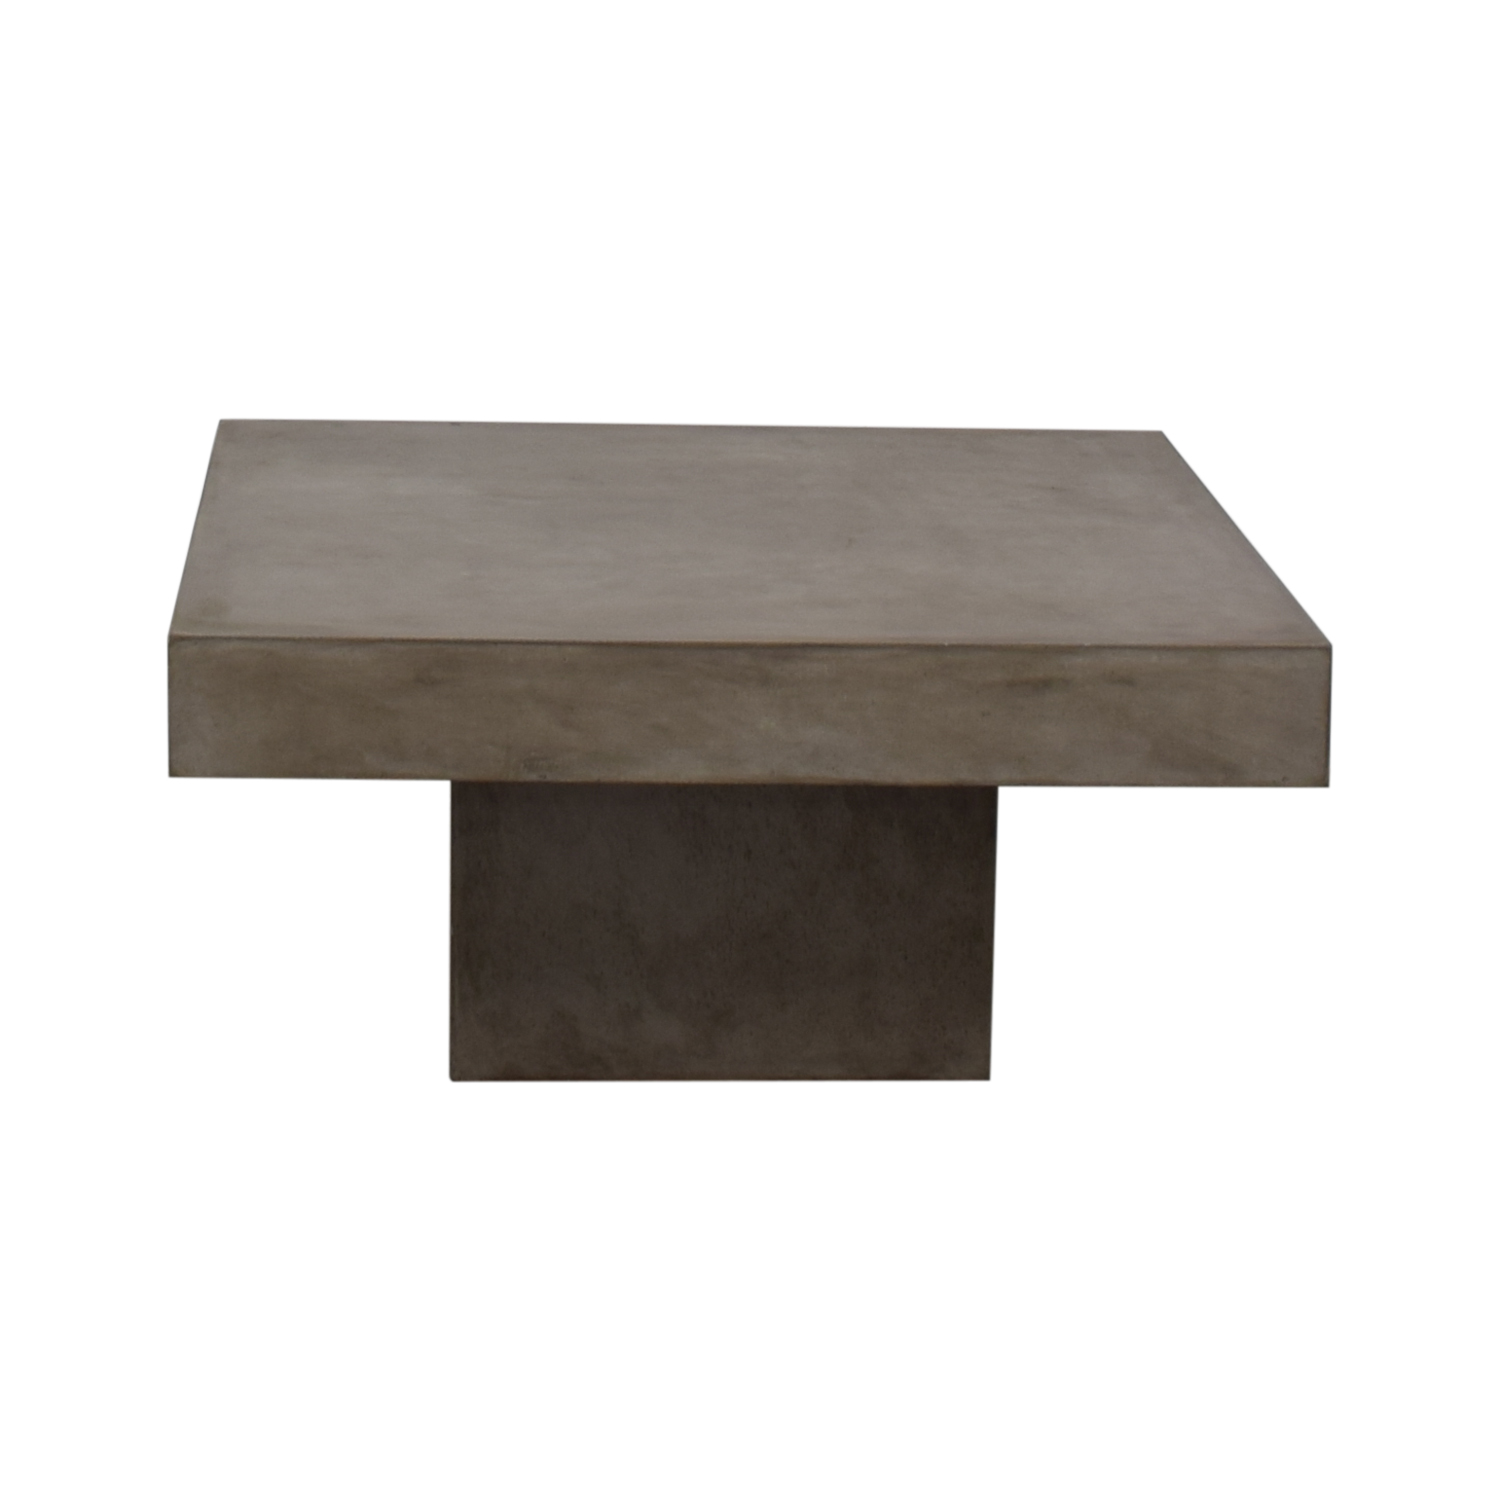 Cb2 Coffee Table.65 Off Cb2 Cb2 Element Cement Coffee Table Tables